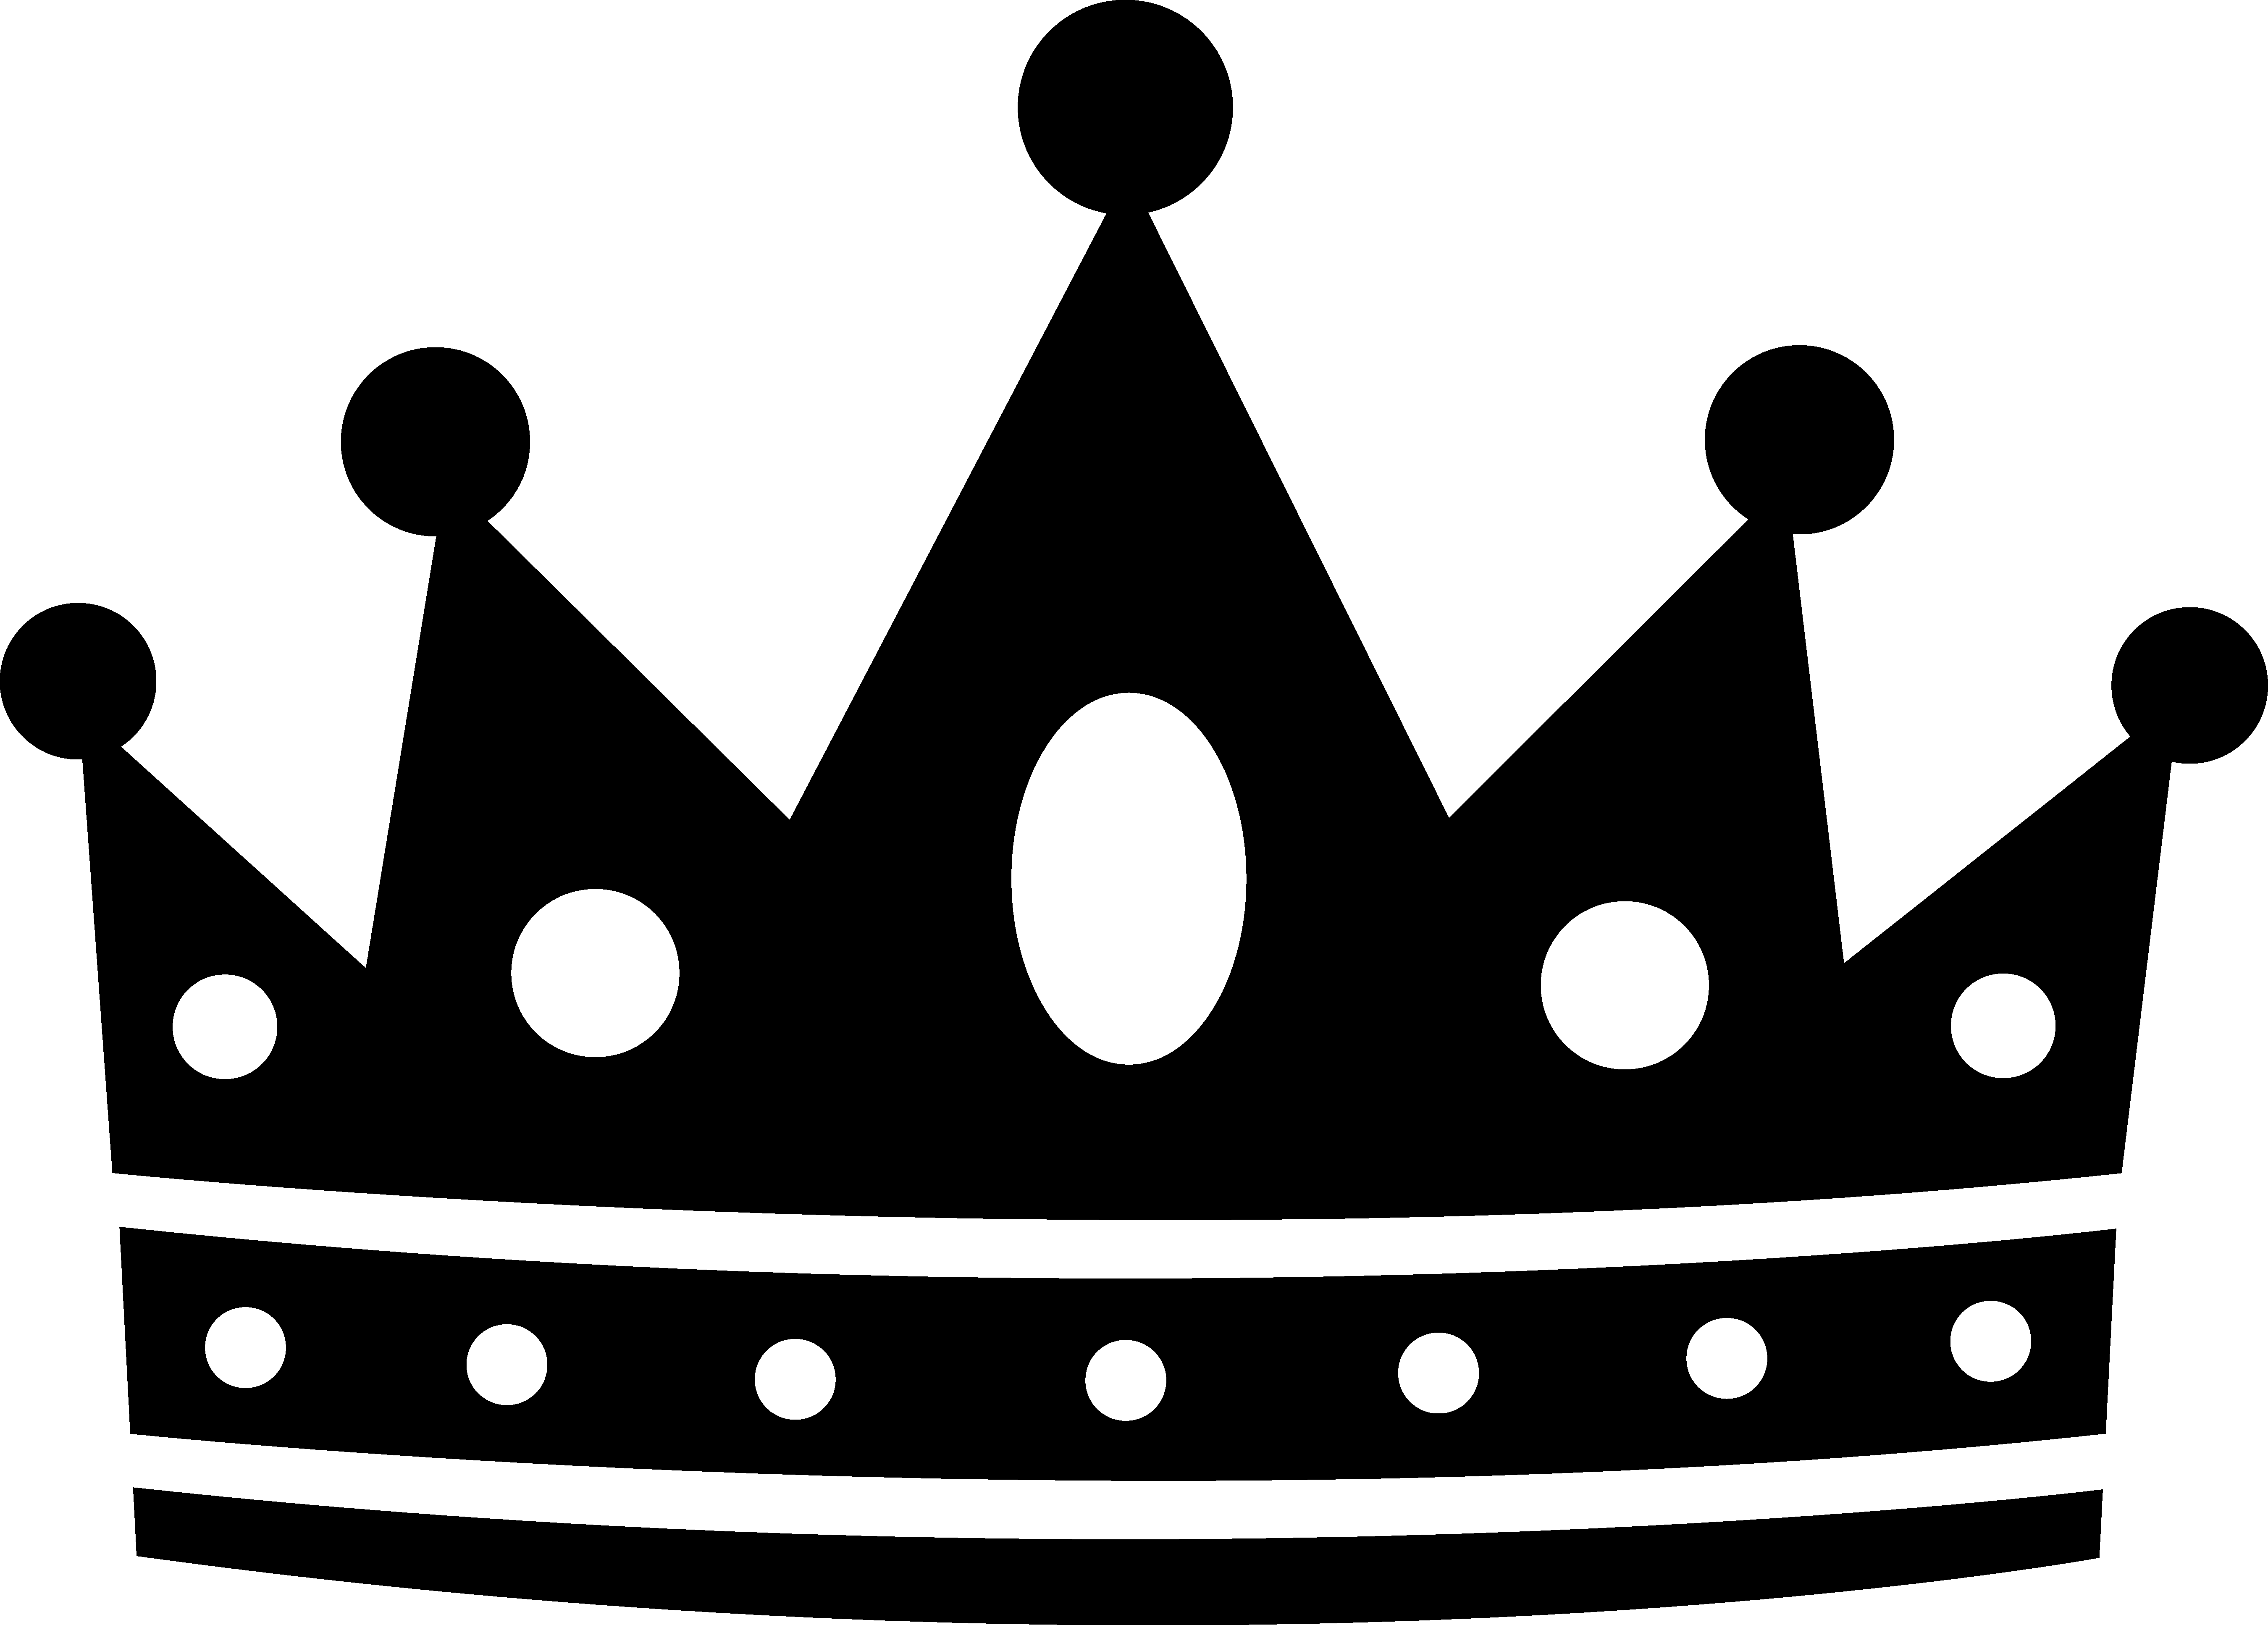 Crown Clip Art With Transparent Backgrou-Crown Clip Art With Transparent Background Clipart Panda Free-5